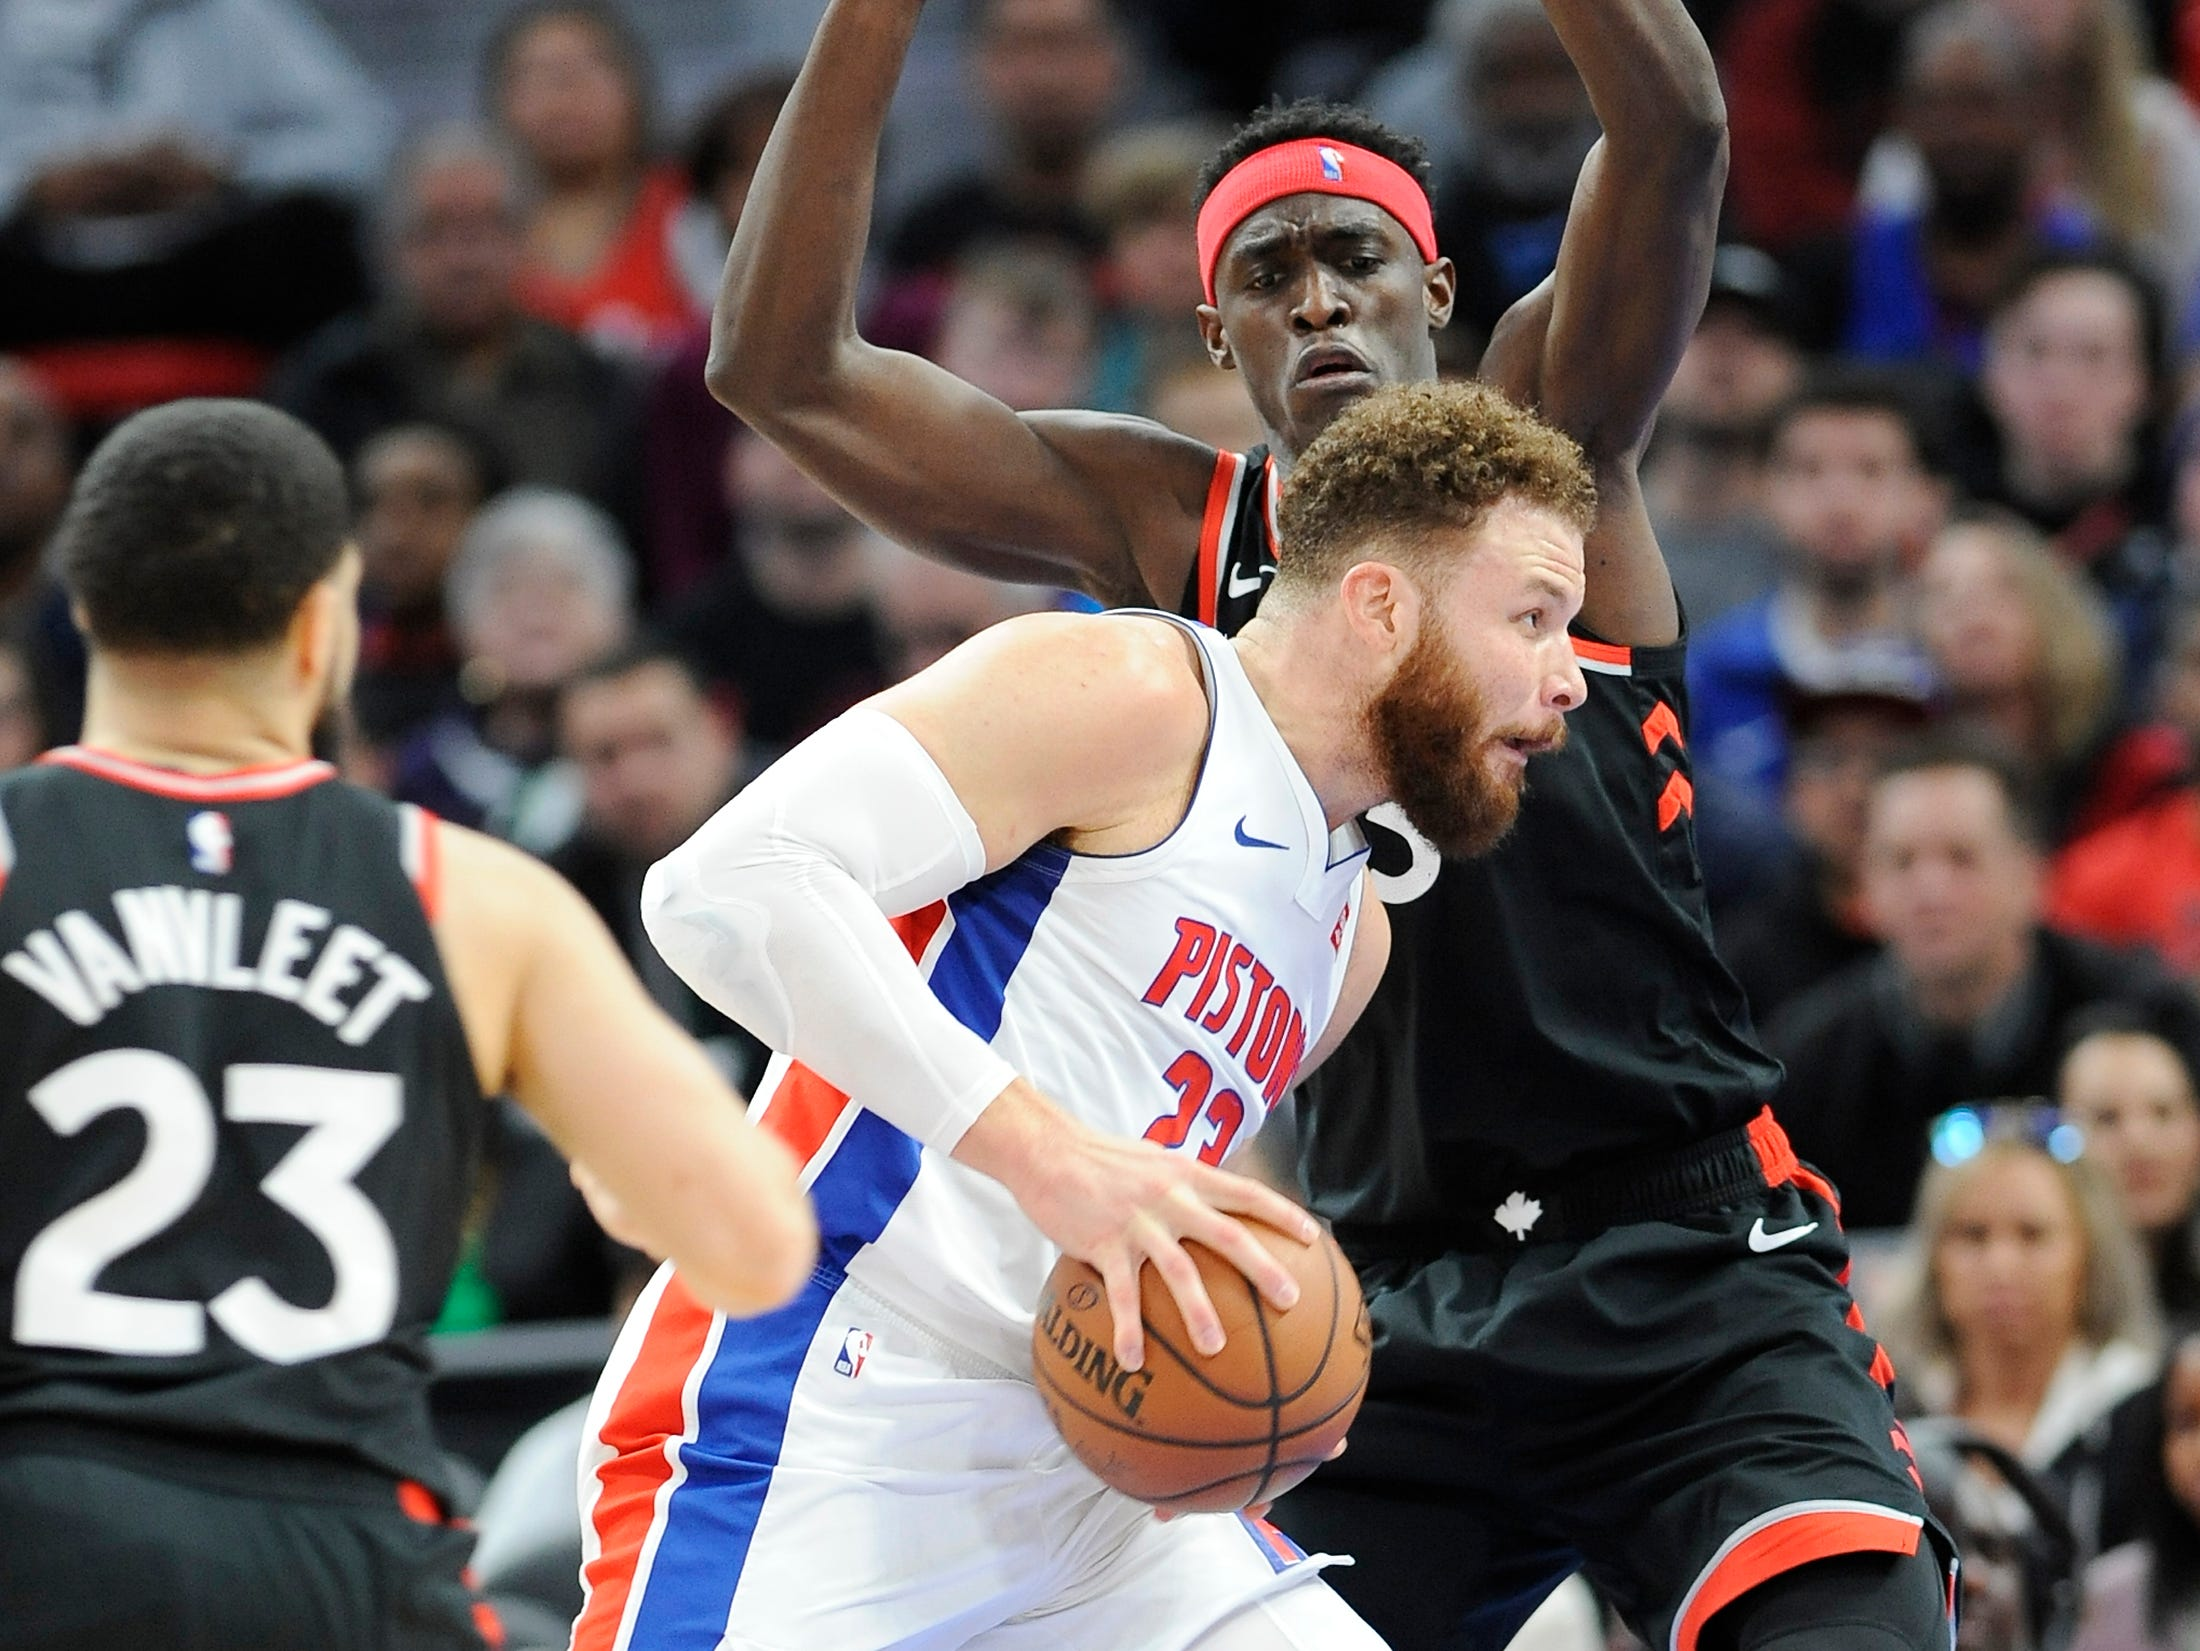 Pistons' Blake Griffin drives around Raptors' Pascal Siakam in the first quarter.